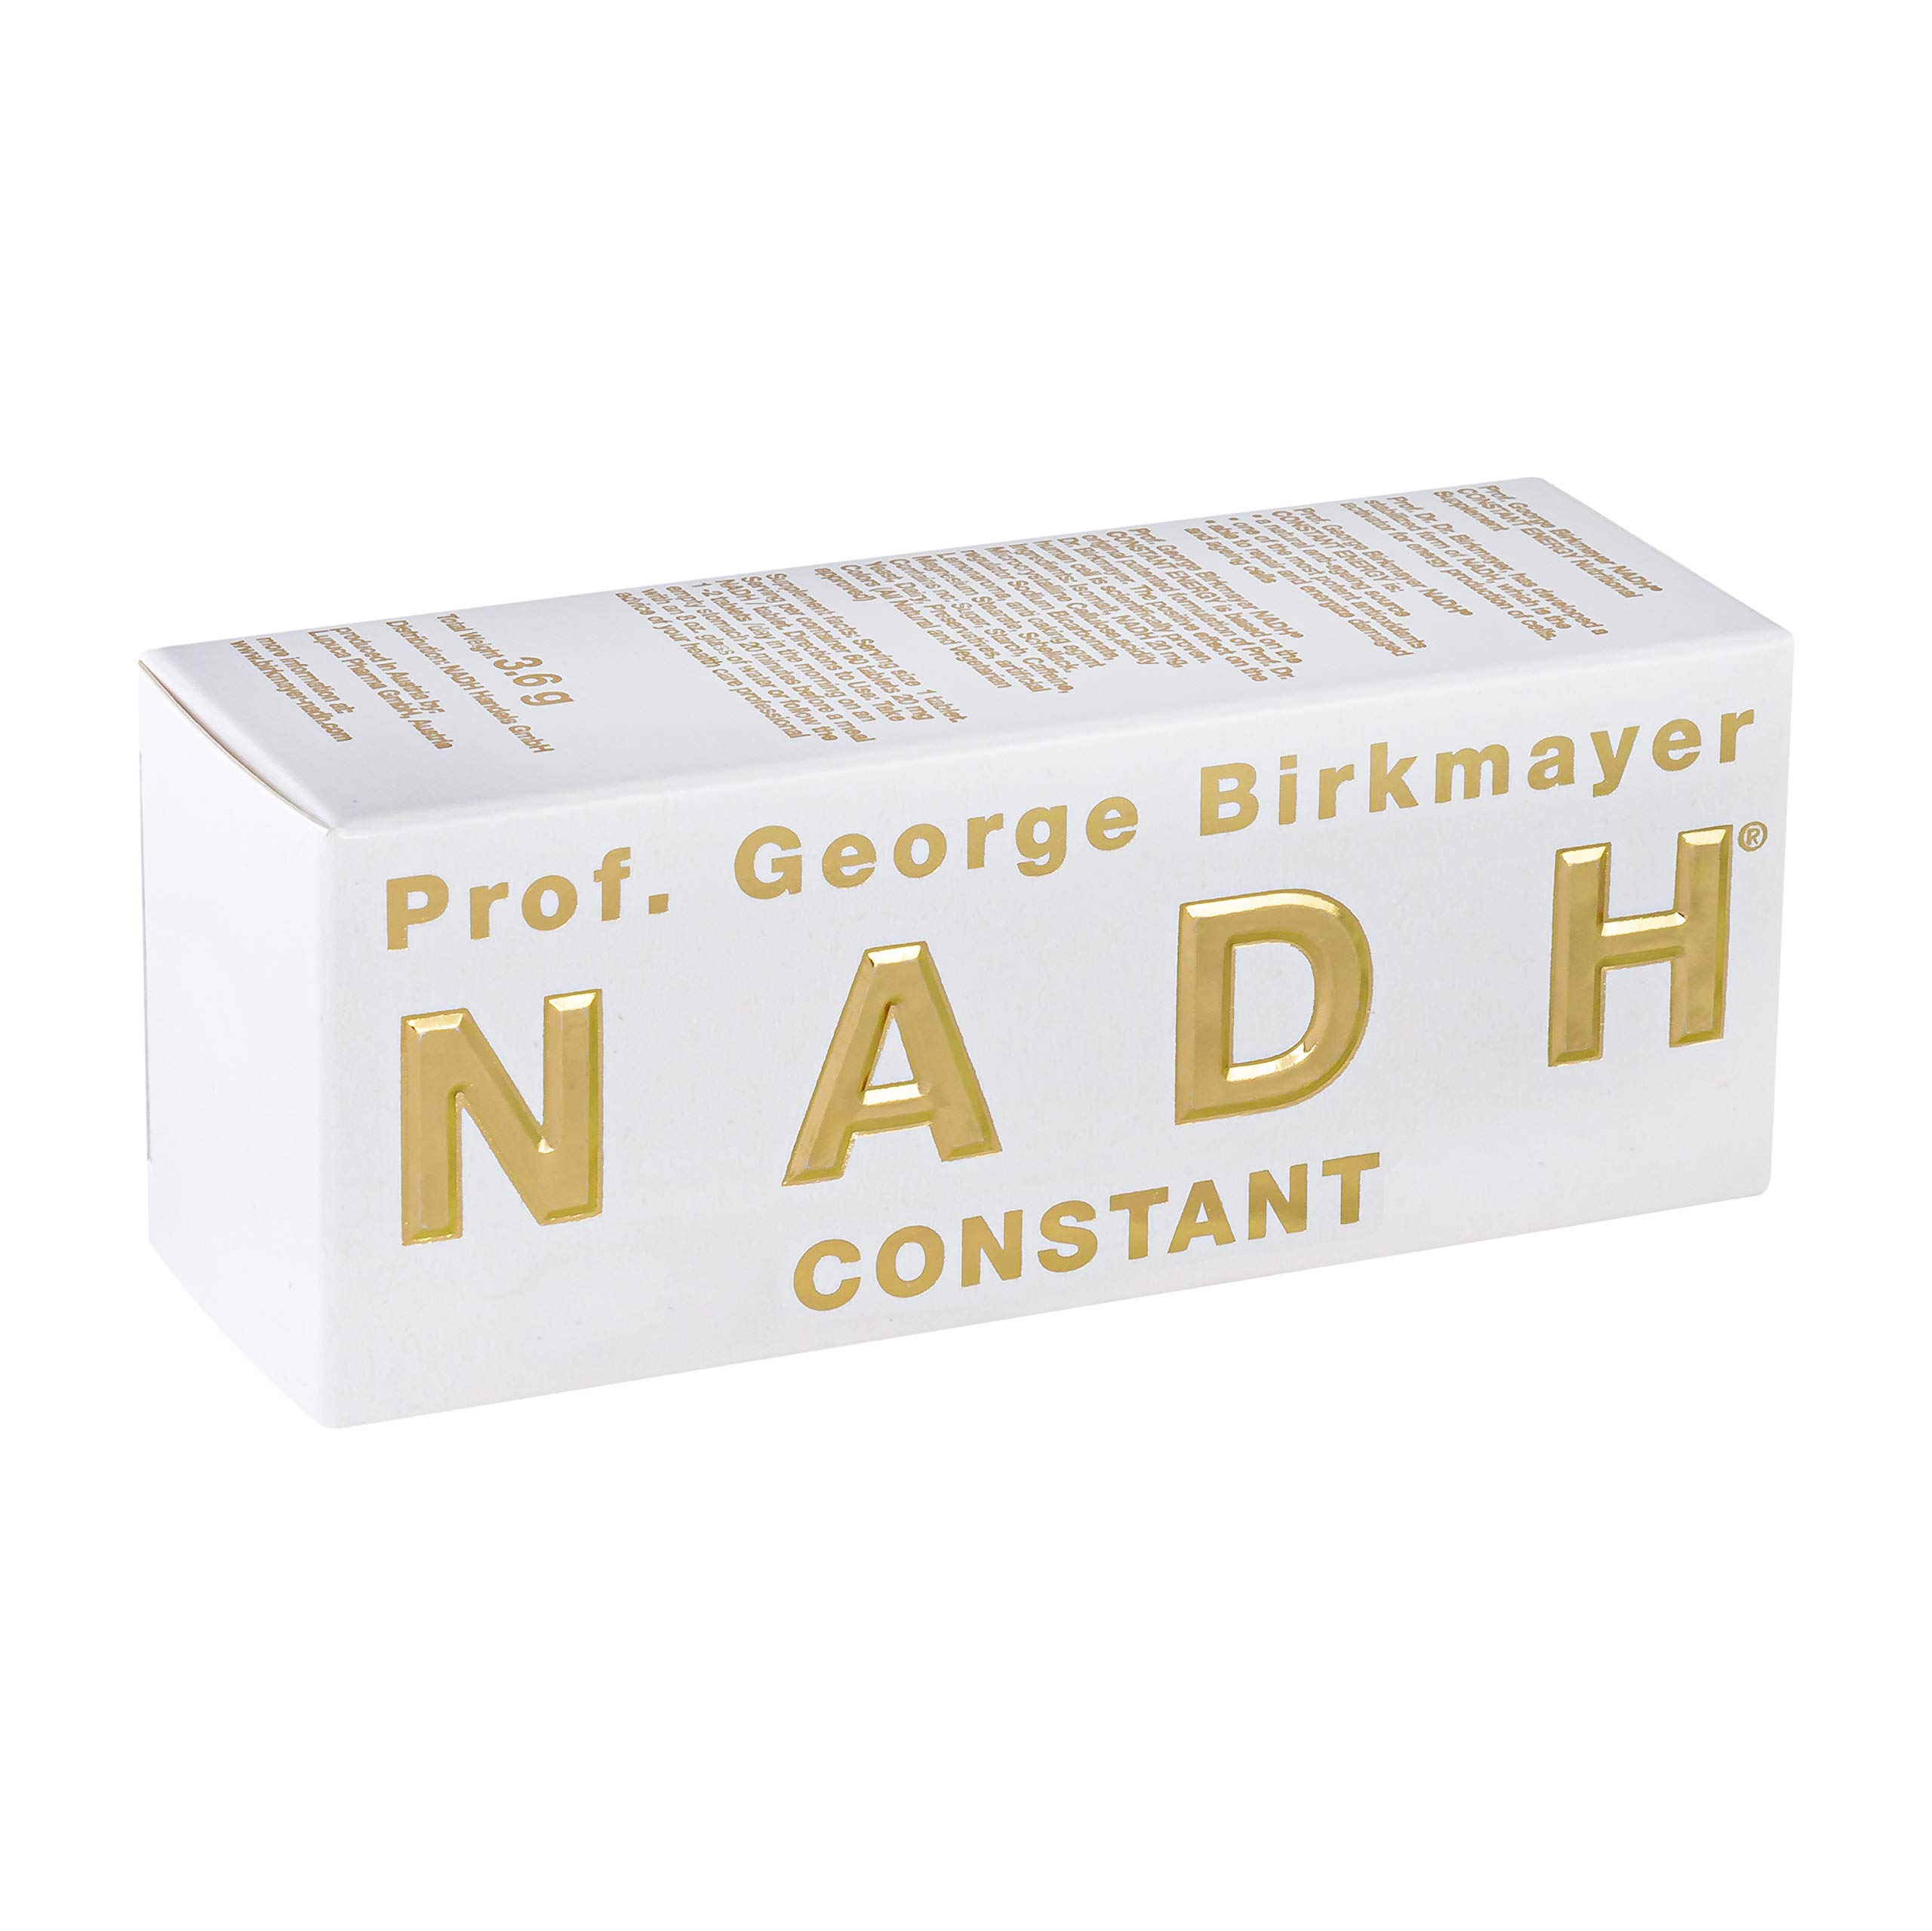 Prof. George Birkmayer NADH – Constant Energy (60 Tablets, 20 mg NADH/Coenzyme 1 per Tablet)